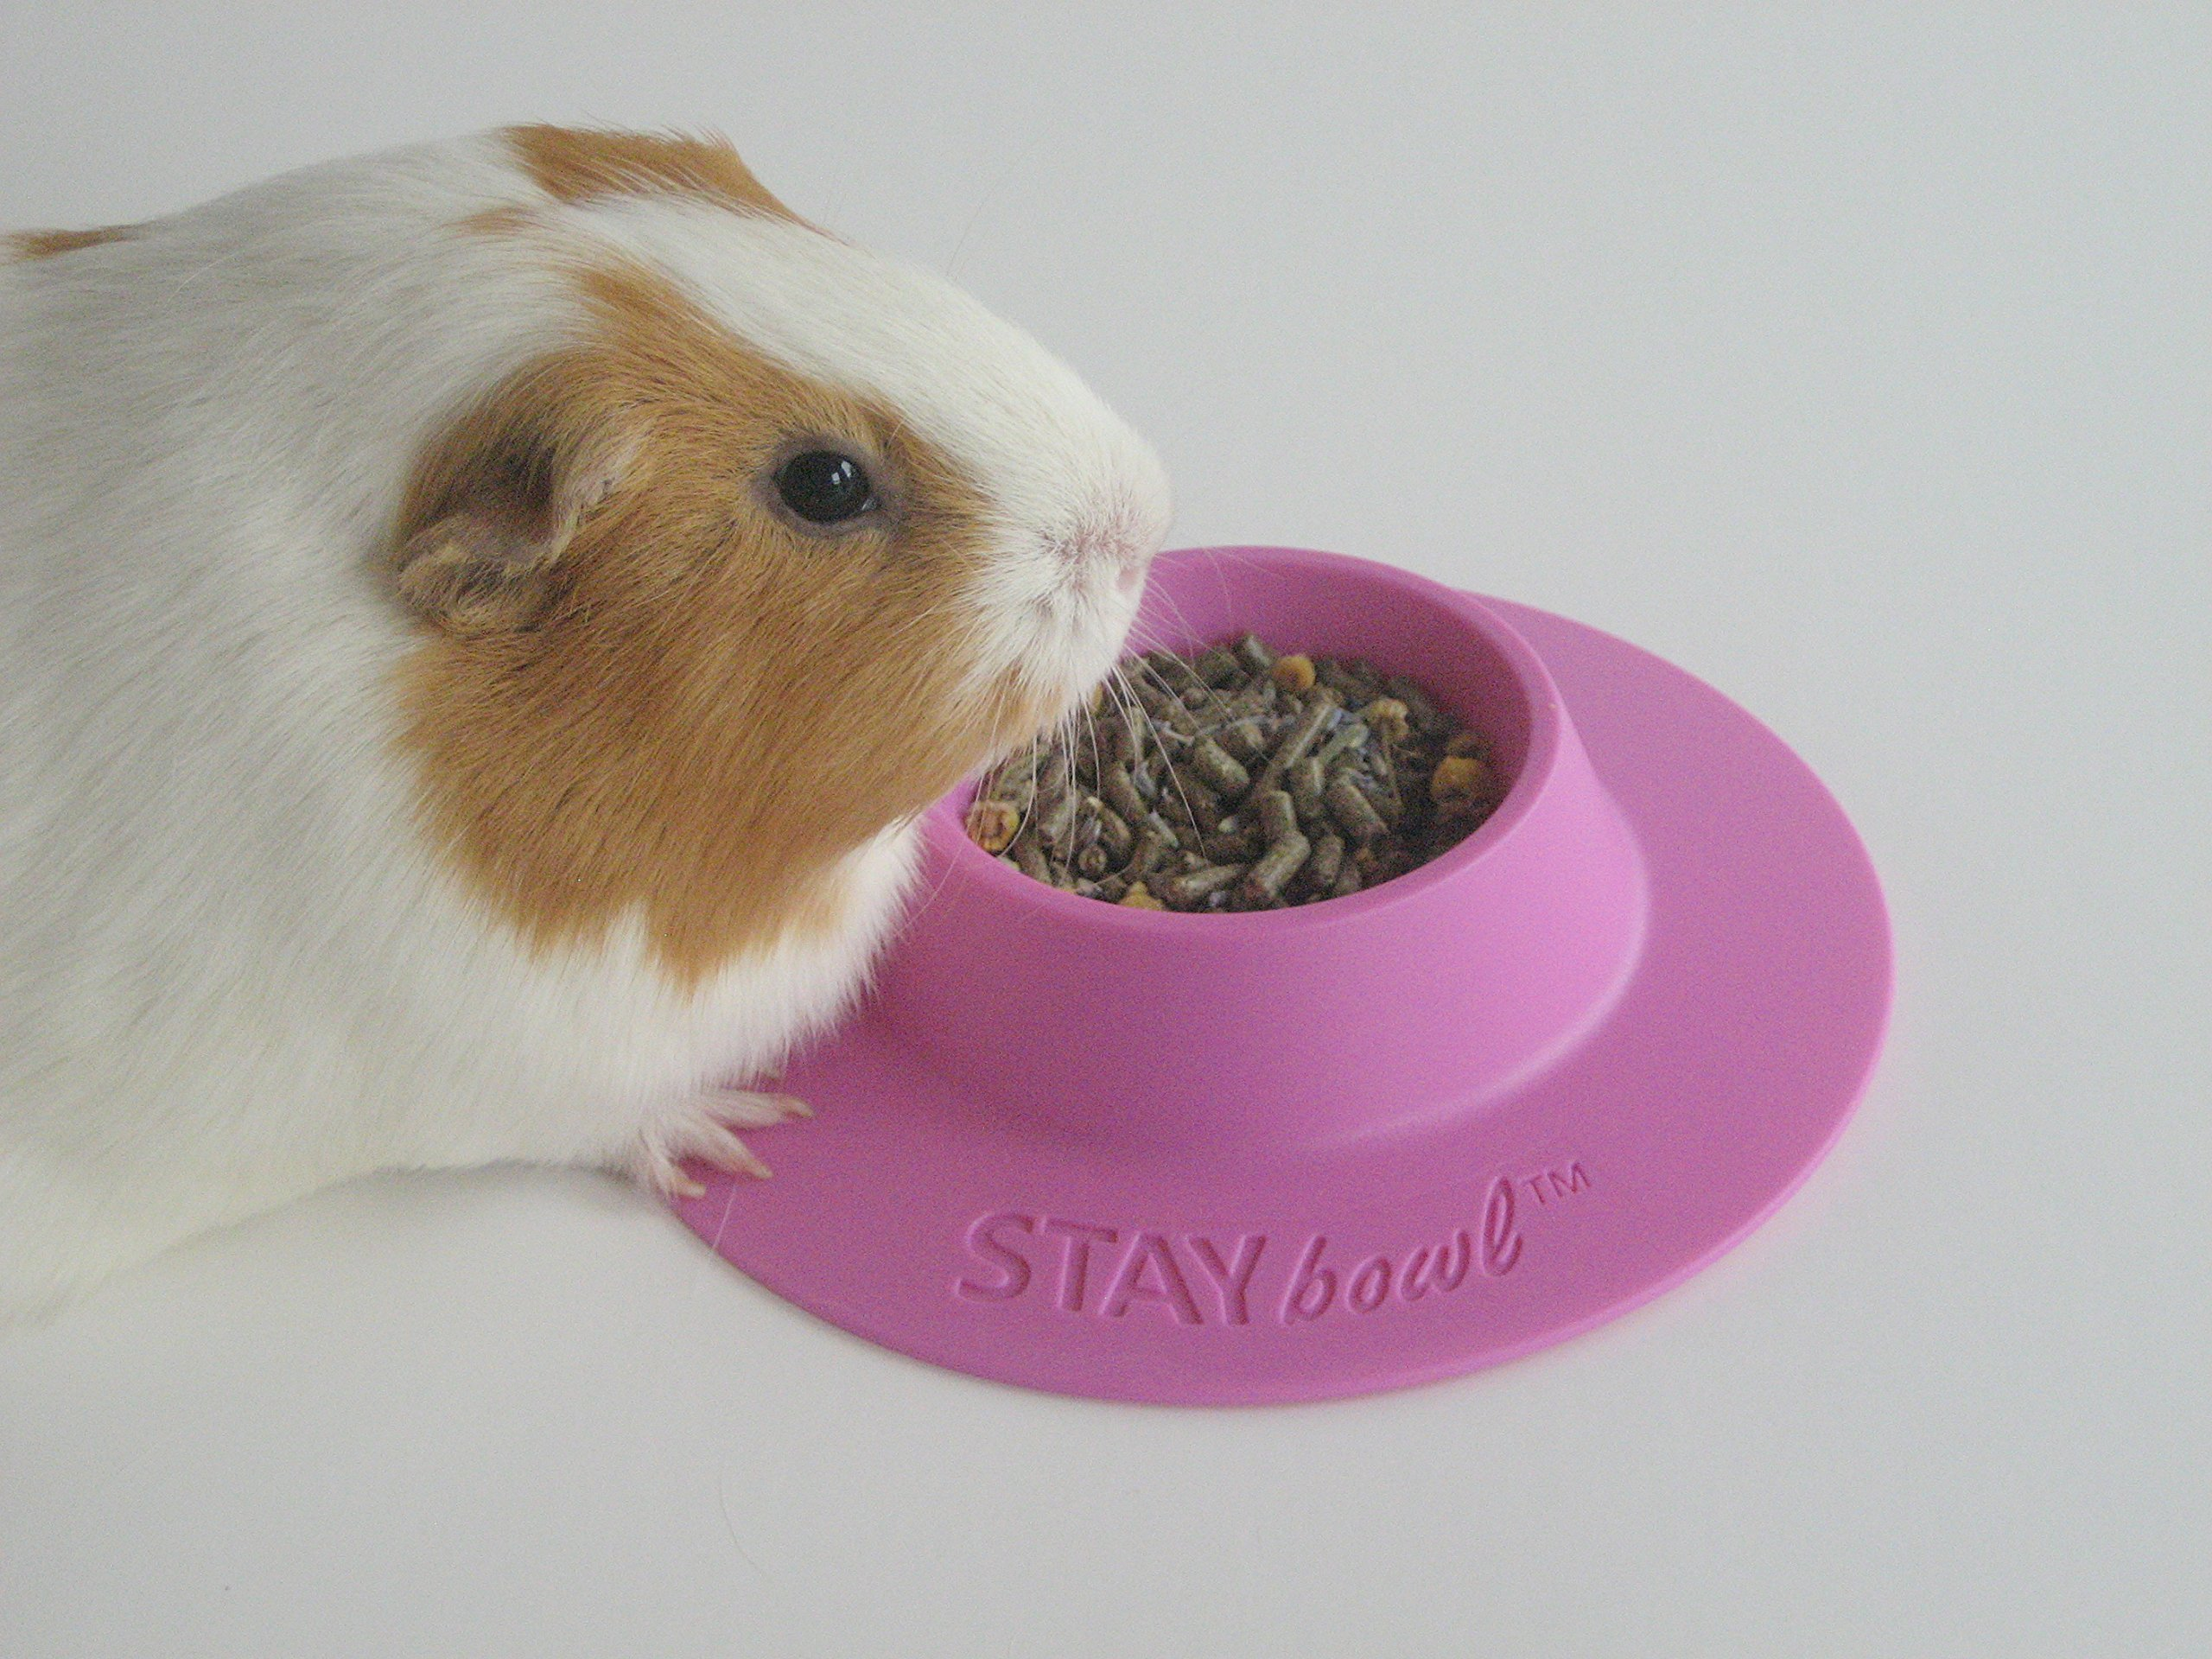 STAYbowl® Tip-Proof Ergonomic Pet Bowl for Guinea Pig and Other Small Pets, 1/4-Cup Small Size, Lilac (Purple)